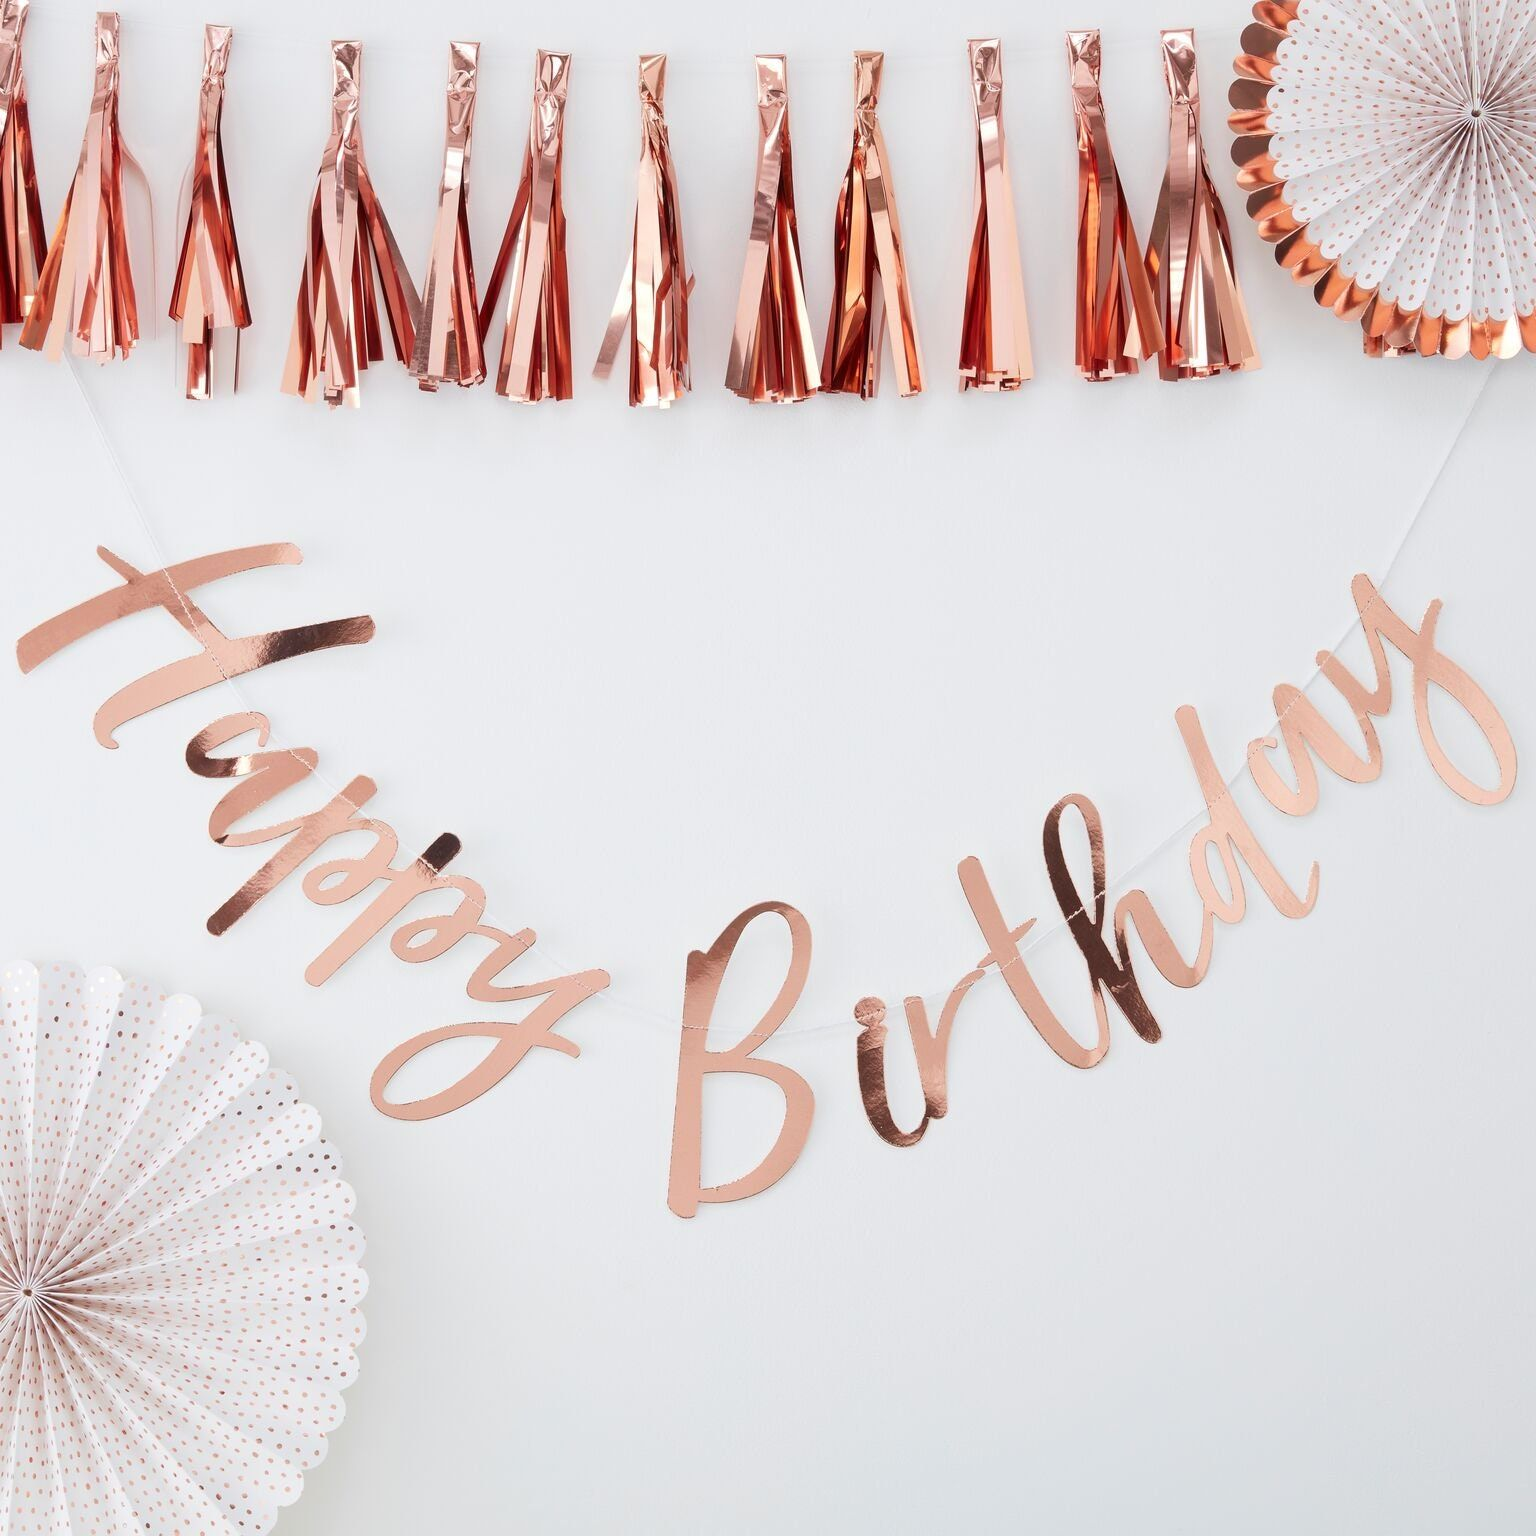 HELLO 18 ROSE GOLD CONFETTI BALLOONS Celebrate your milestone birthday in sparkly style with these fab rose gold confetti balloons. The rose gold confetti sticks to the side of the balloon and will sparkle on as you party the night away - use in combination with our number balloons for the perfect 18th birthday balloons bundle! Check out our Mix It Up range for party supplies for all occasions. Whether you want a fab photo booth some gorgeous party tableware or a showstopping balloon centerpiece